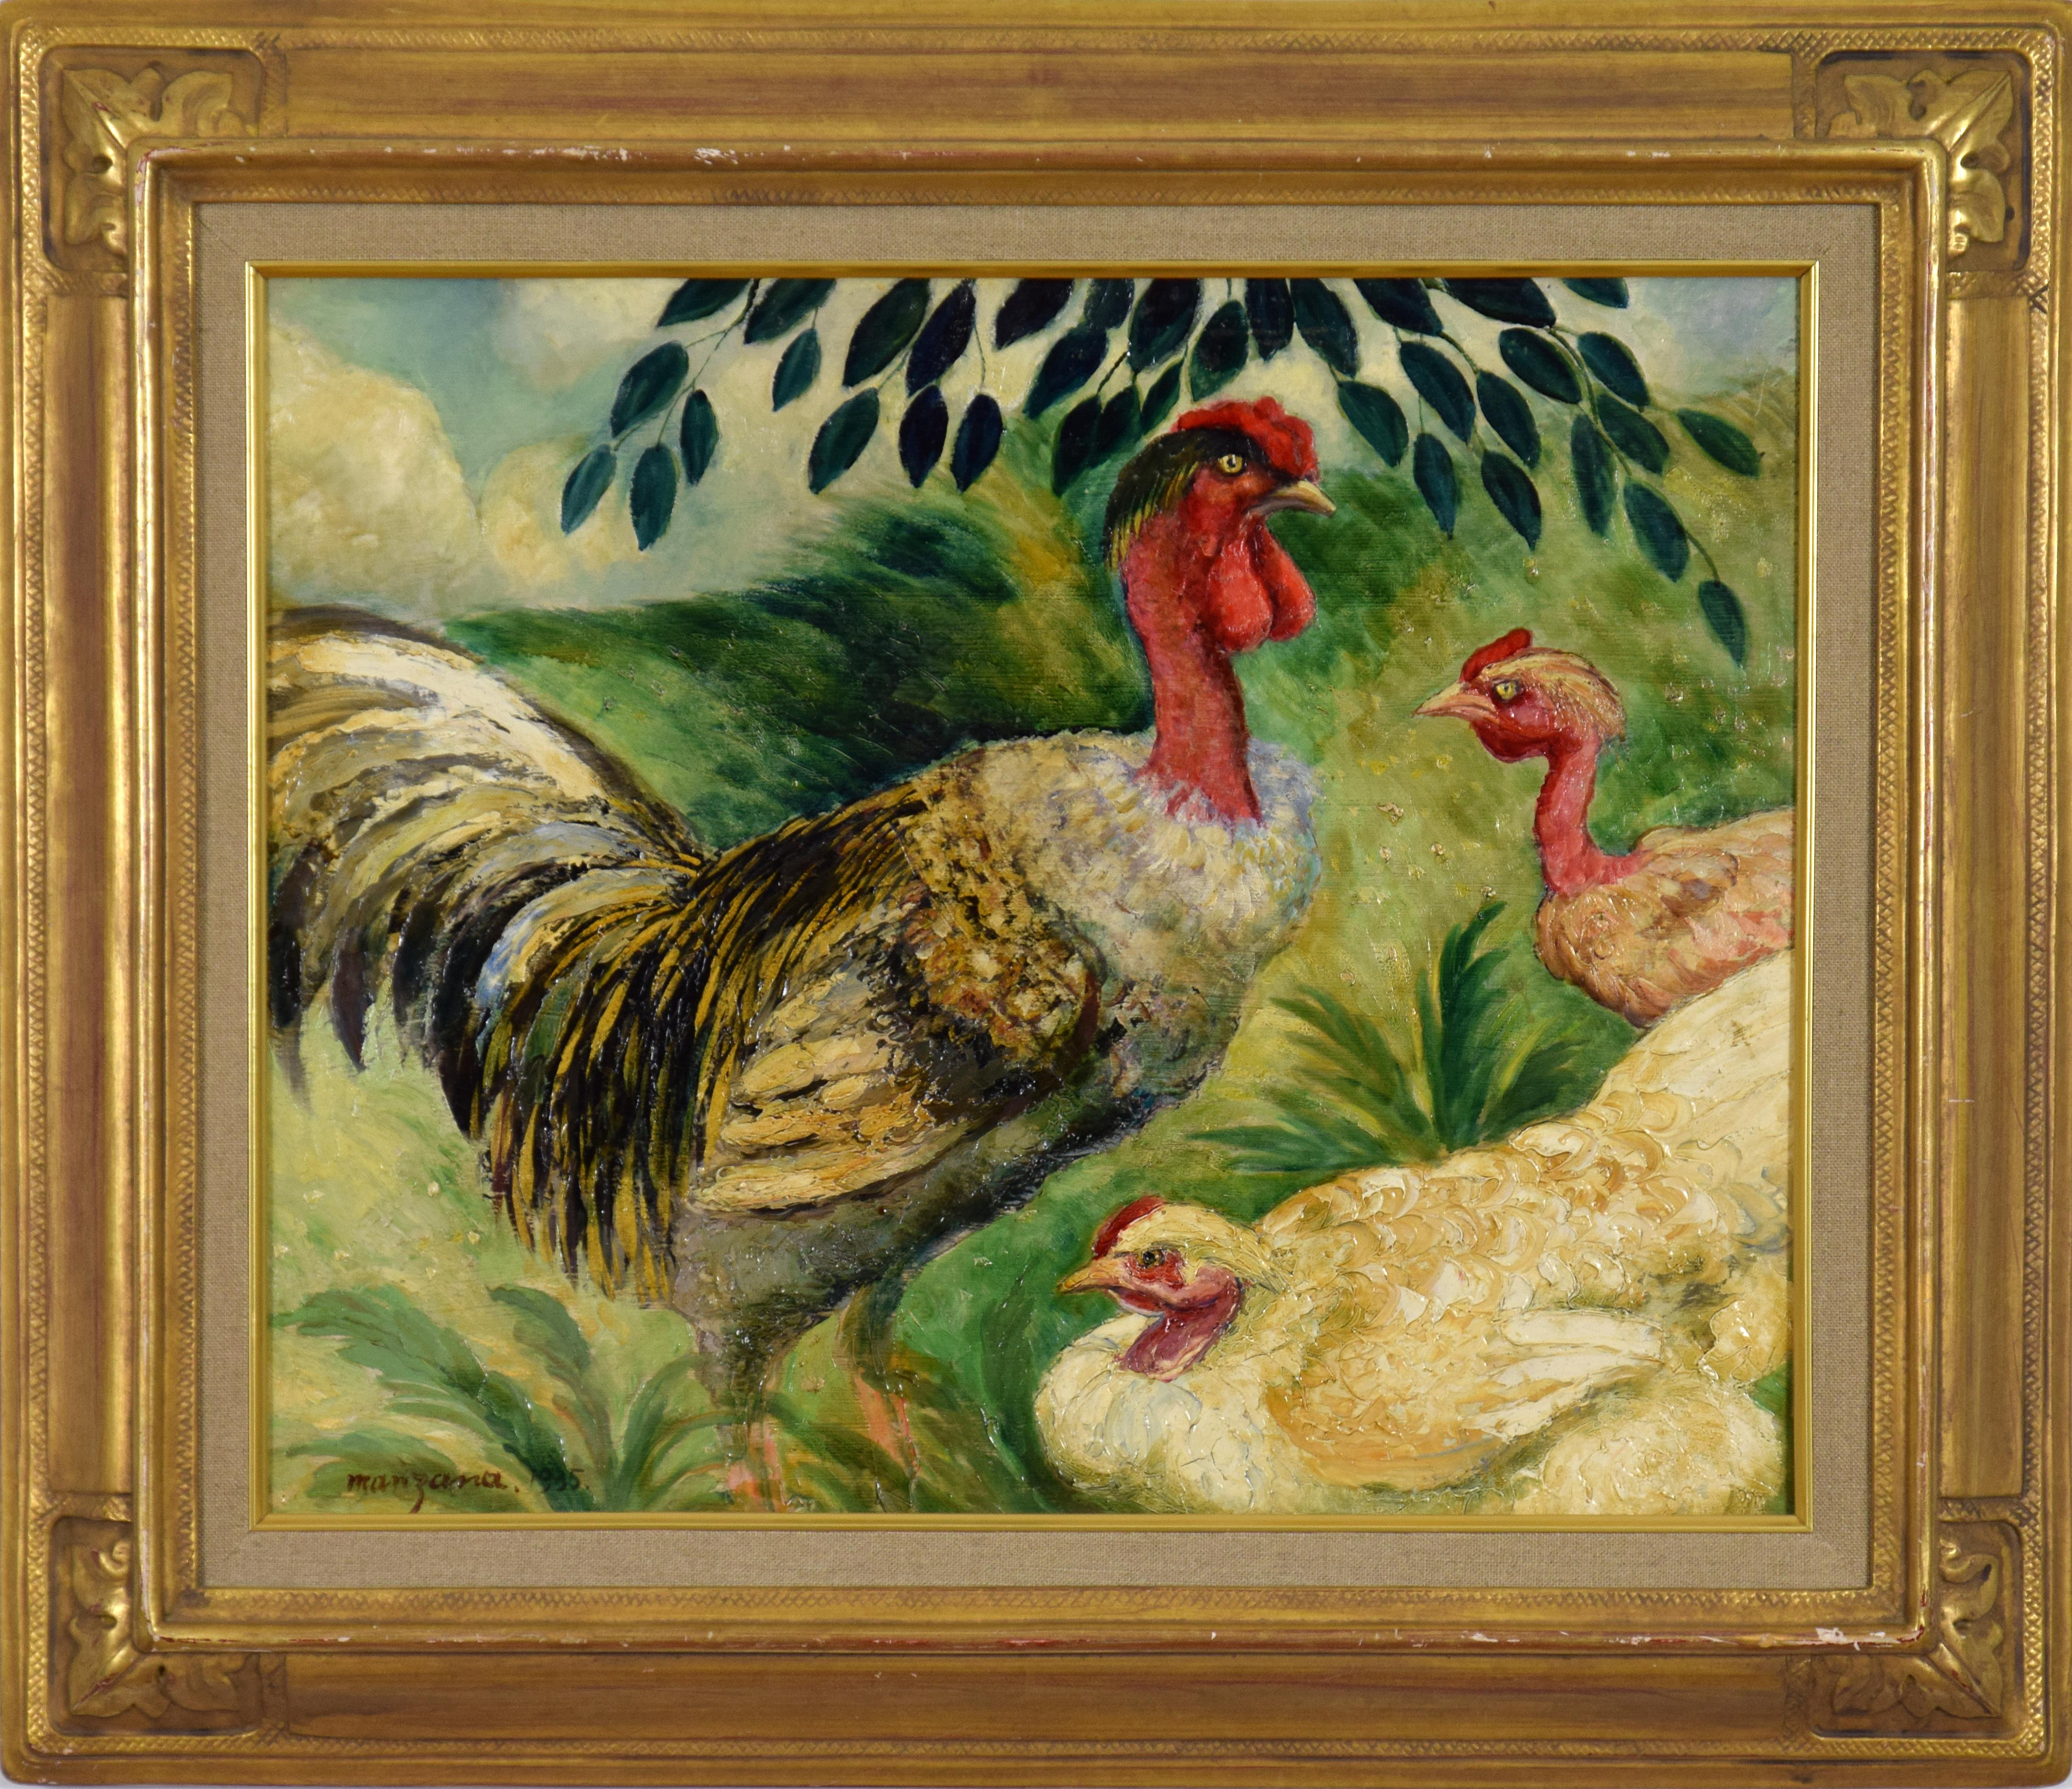 Rooster by GEORGES MANZANA PISSARRO - Animal painting of Cockerel and Chickens